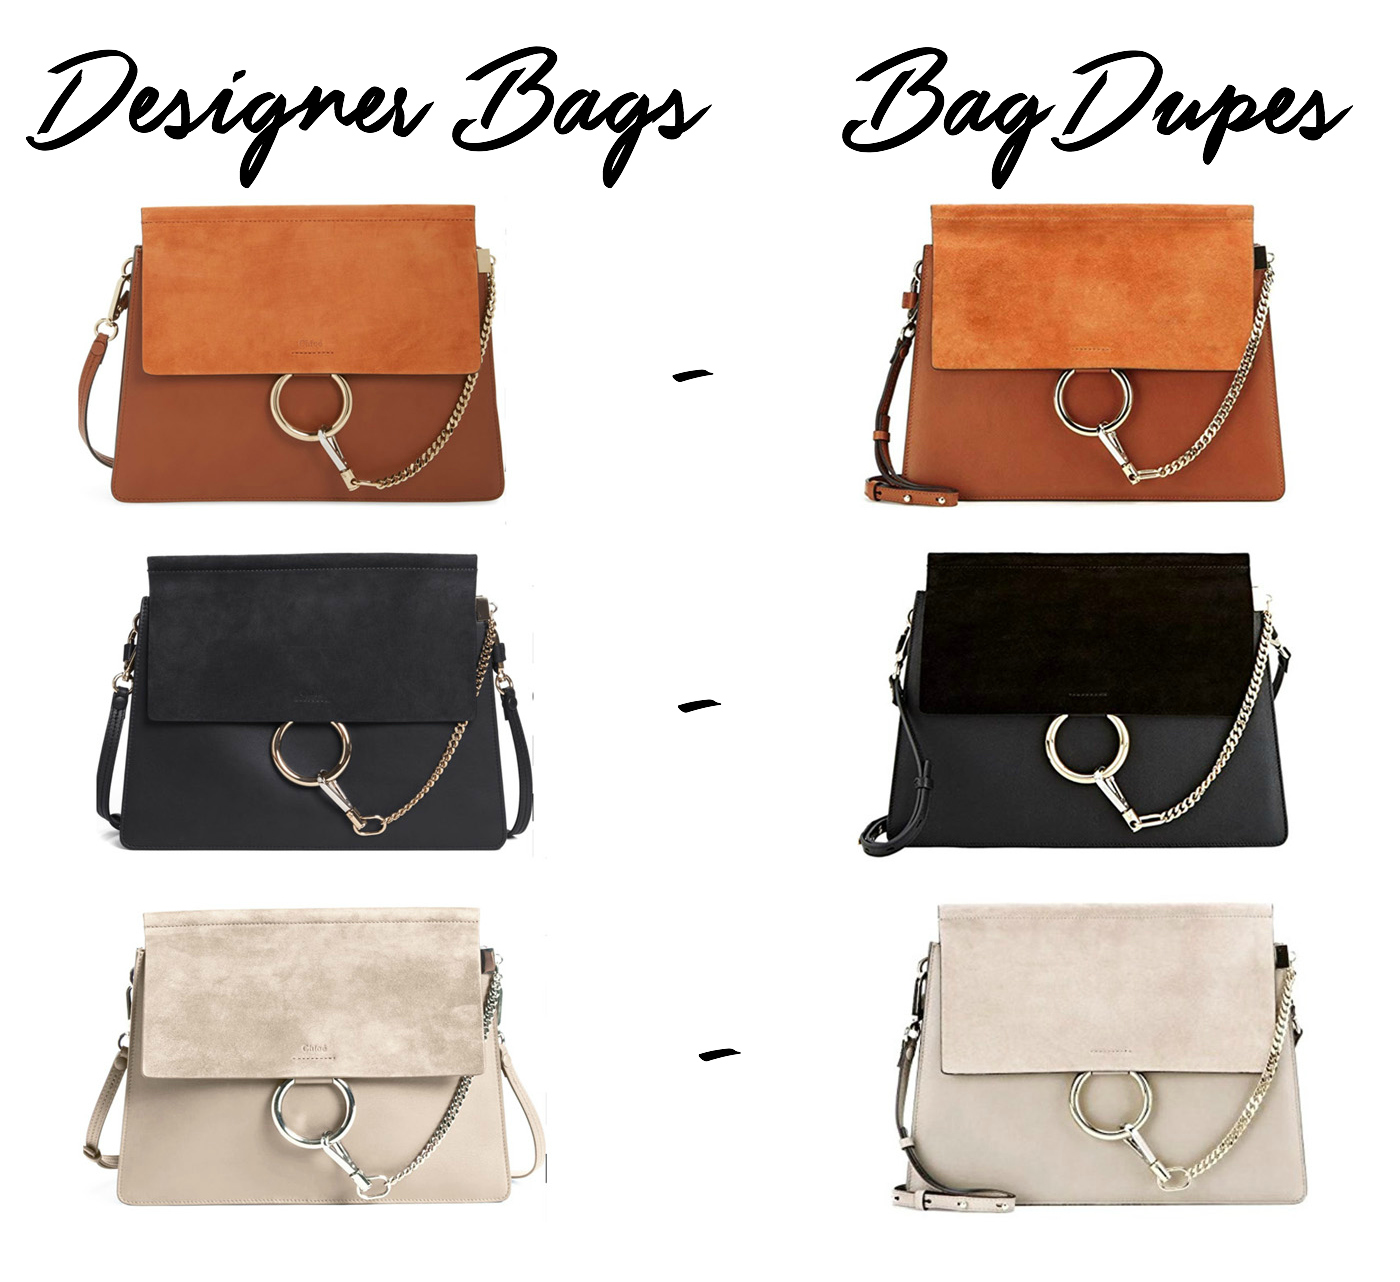 the best chloe faye designer bag | identical designer bag dupe | affordable designer bag dupe | good quality designer bag dupe | trendy designer bag dupe